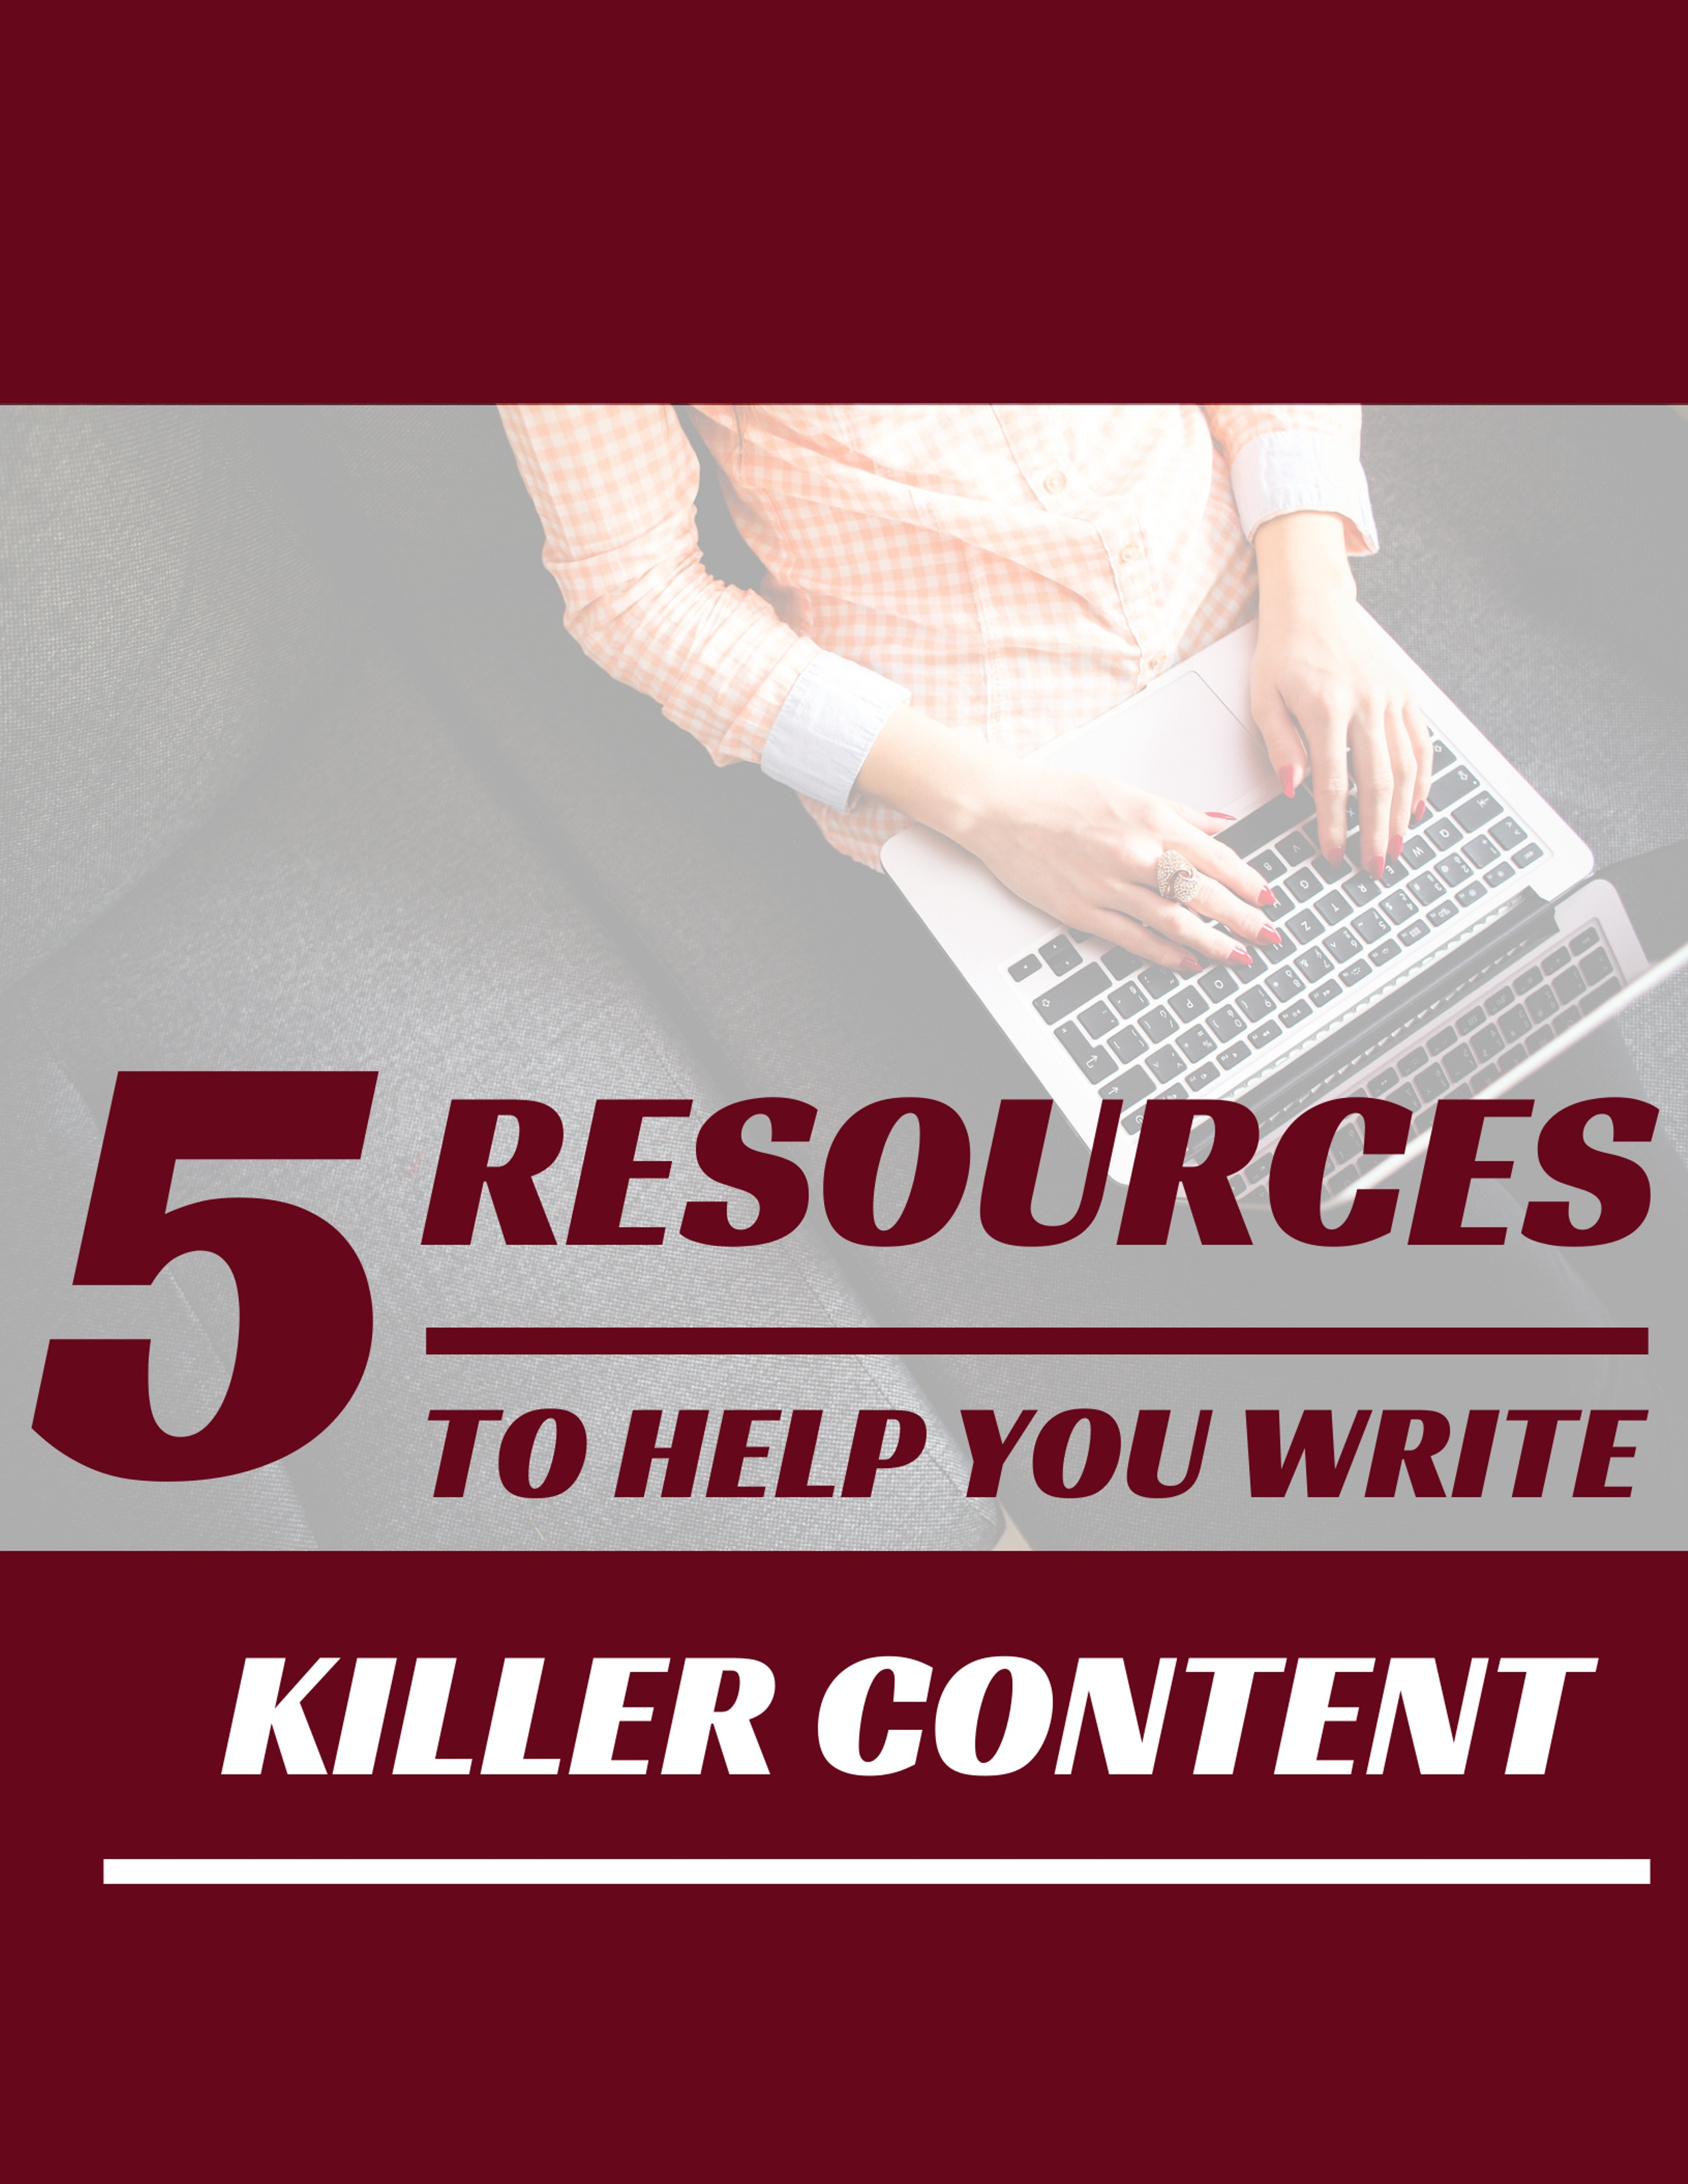 5 resources to help you write killer content